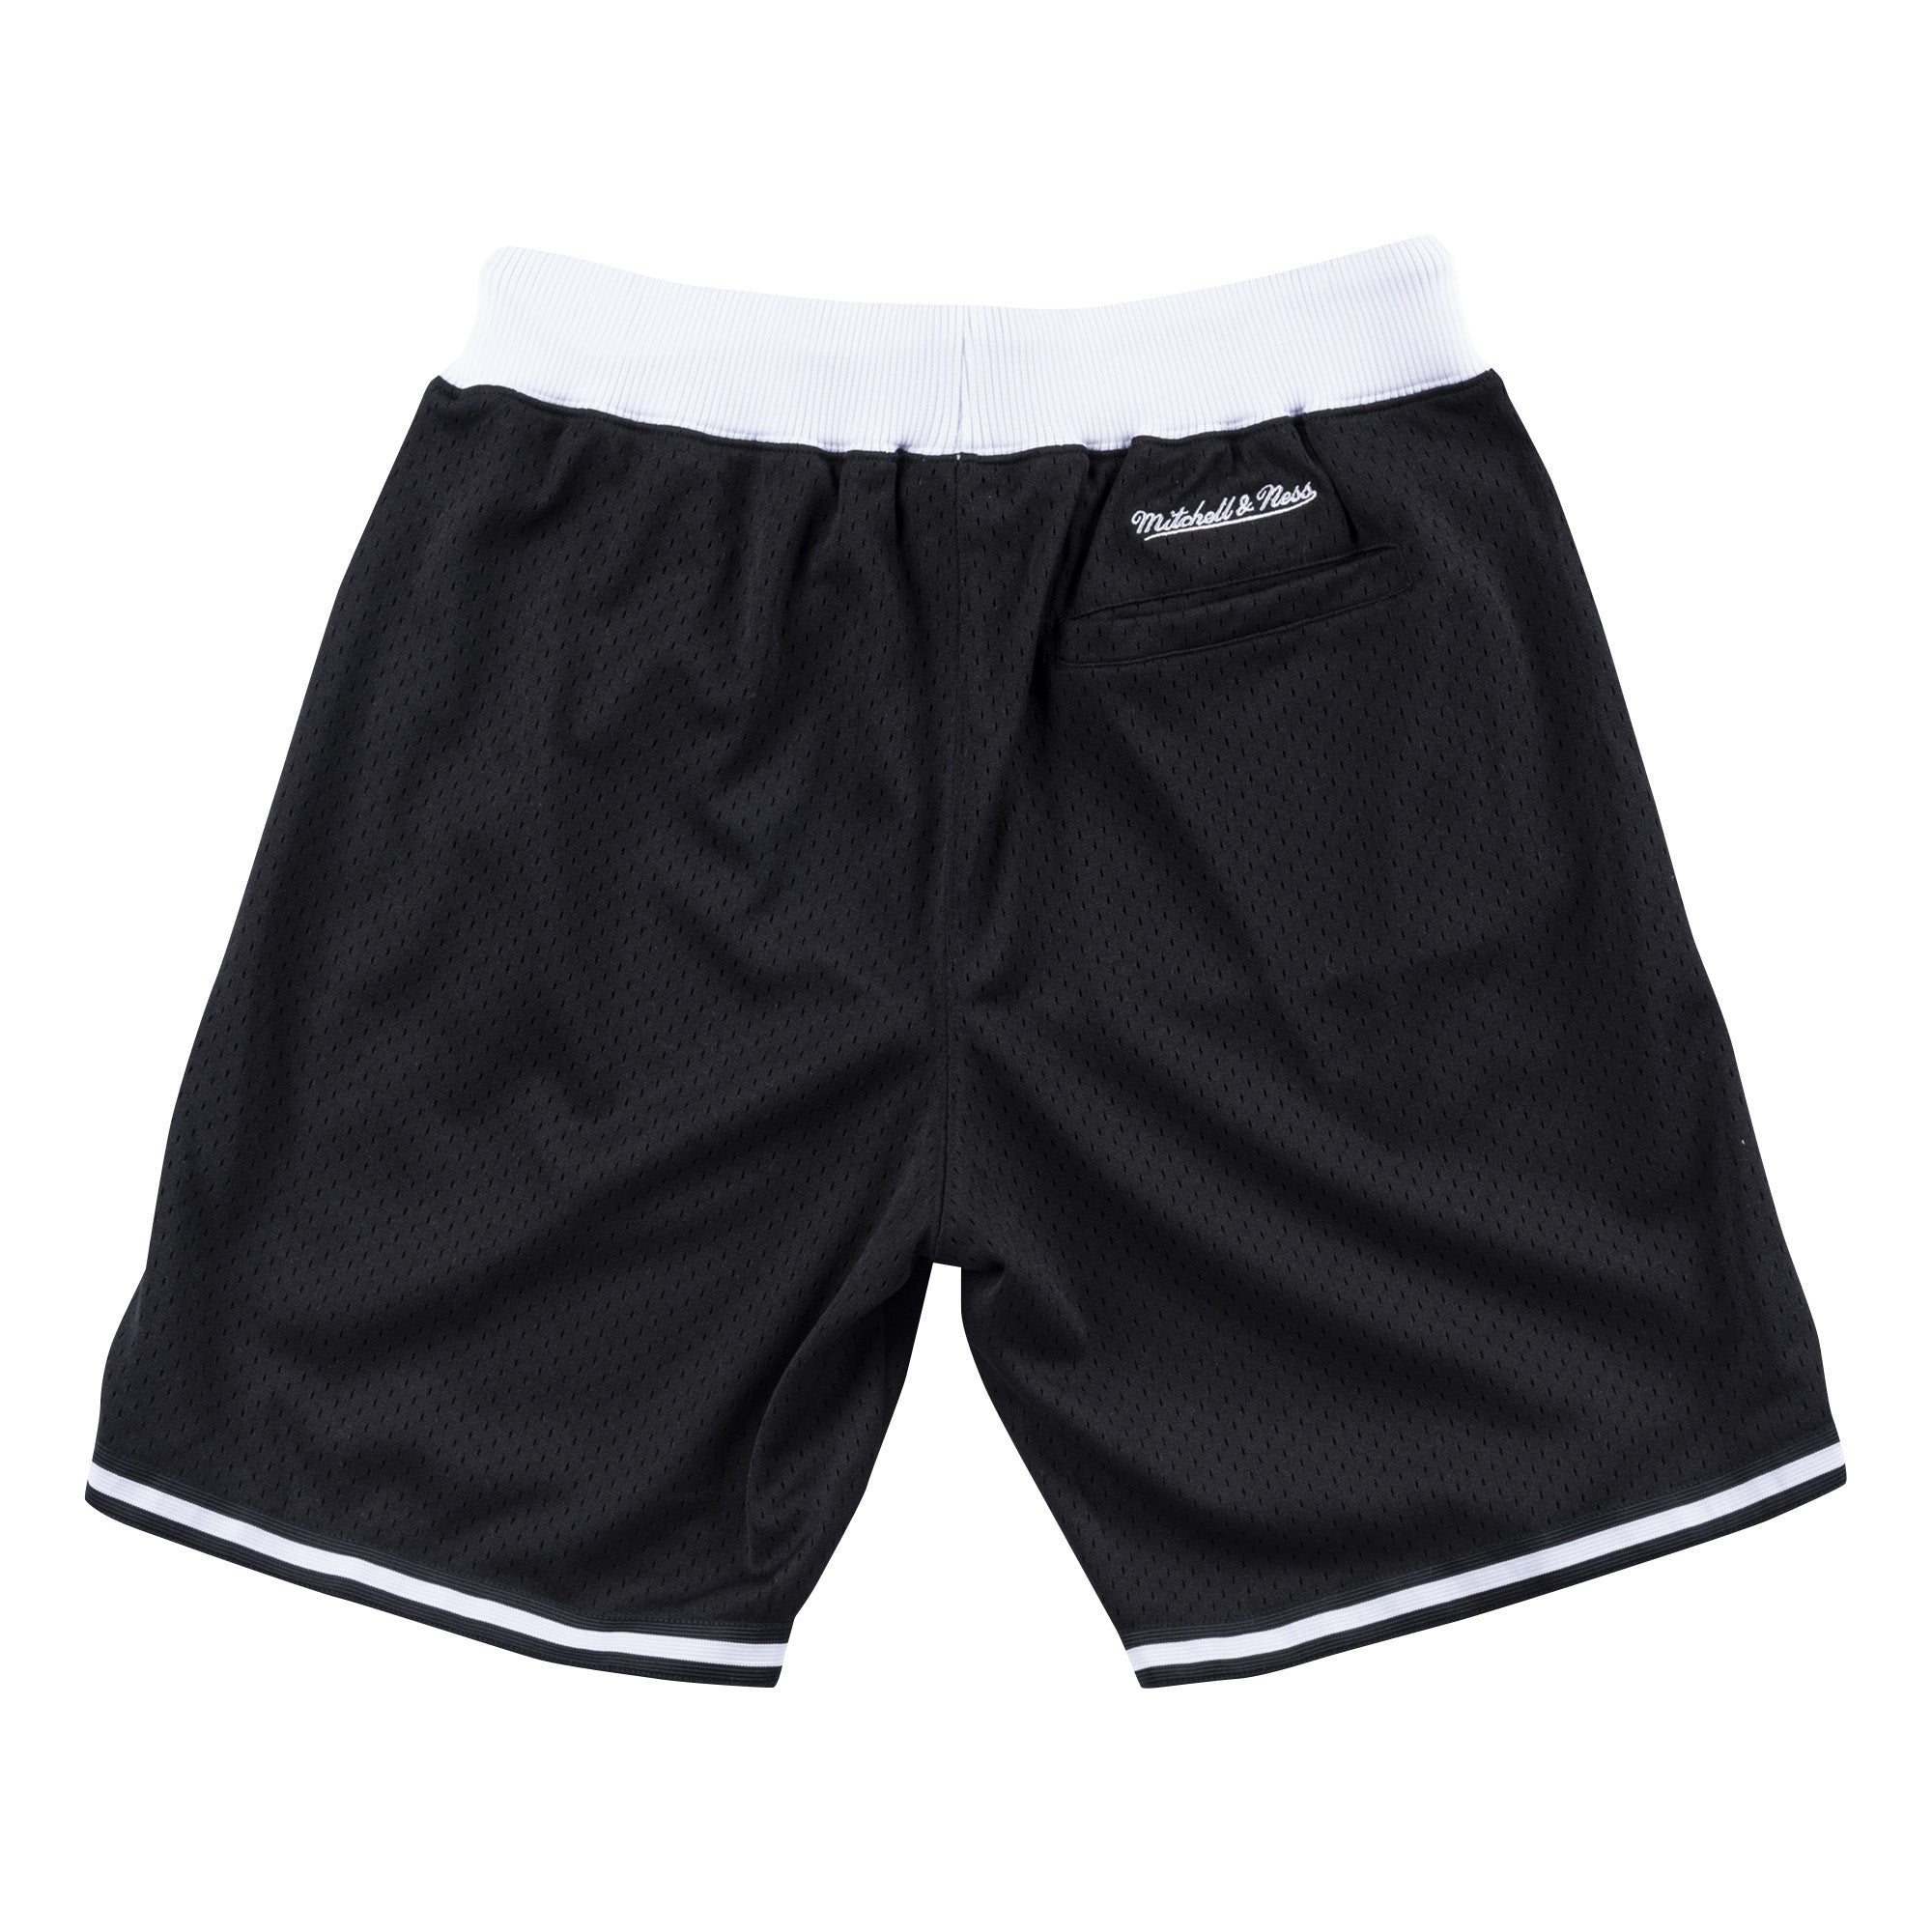 Branded Core Mesh Short Branded - Black - Mitchell & Ness